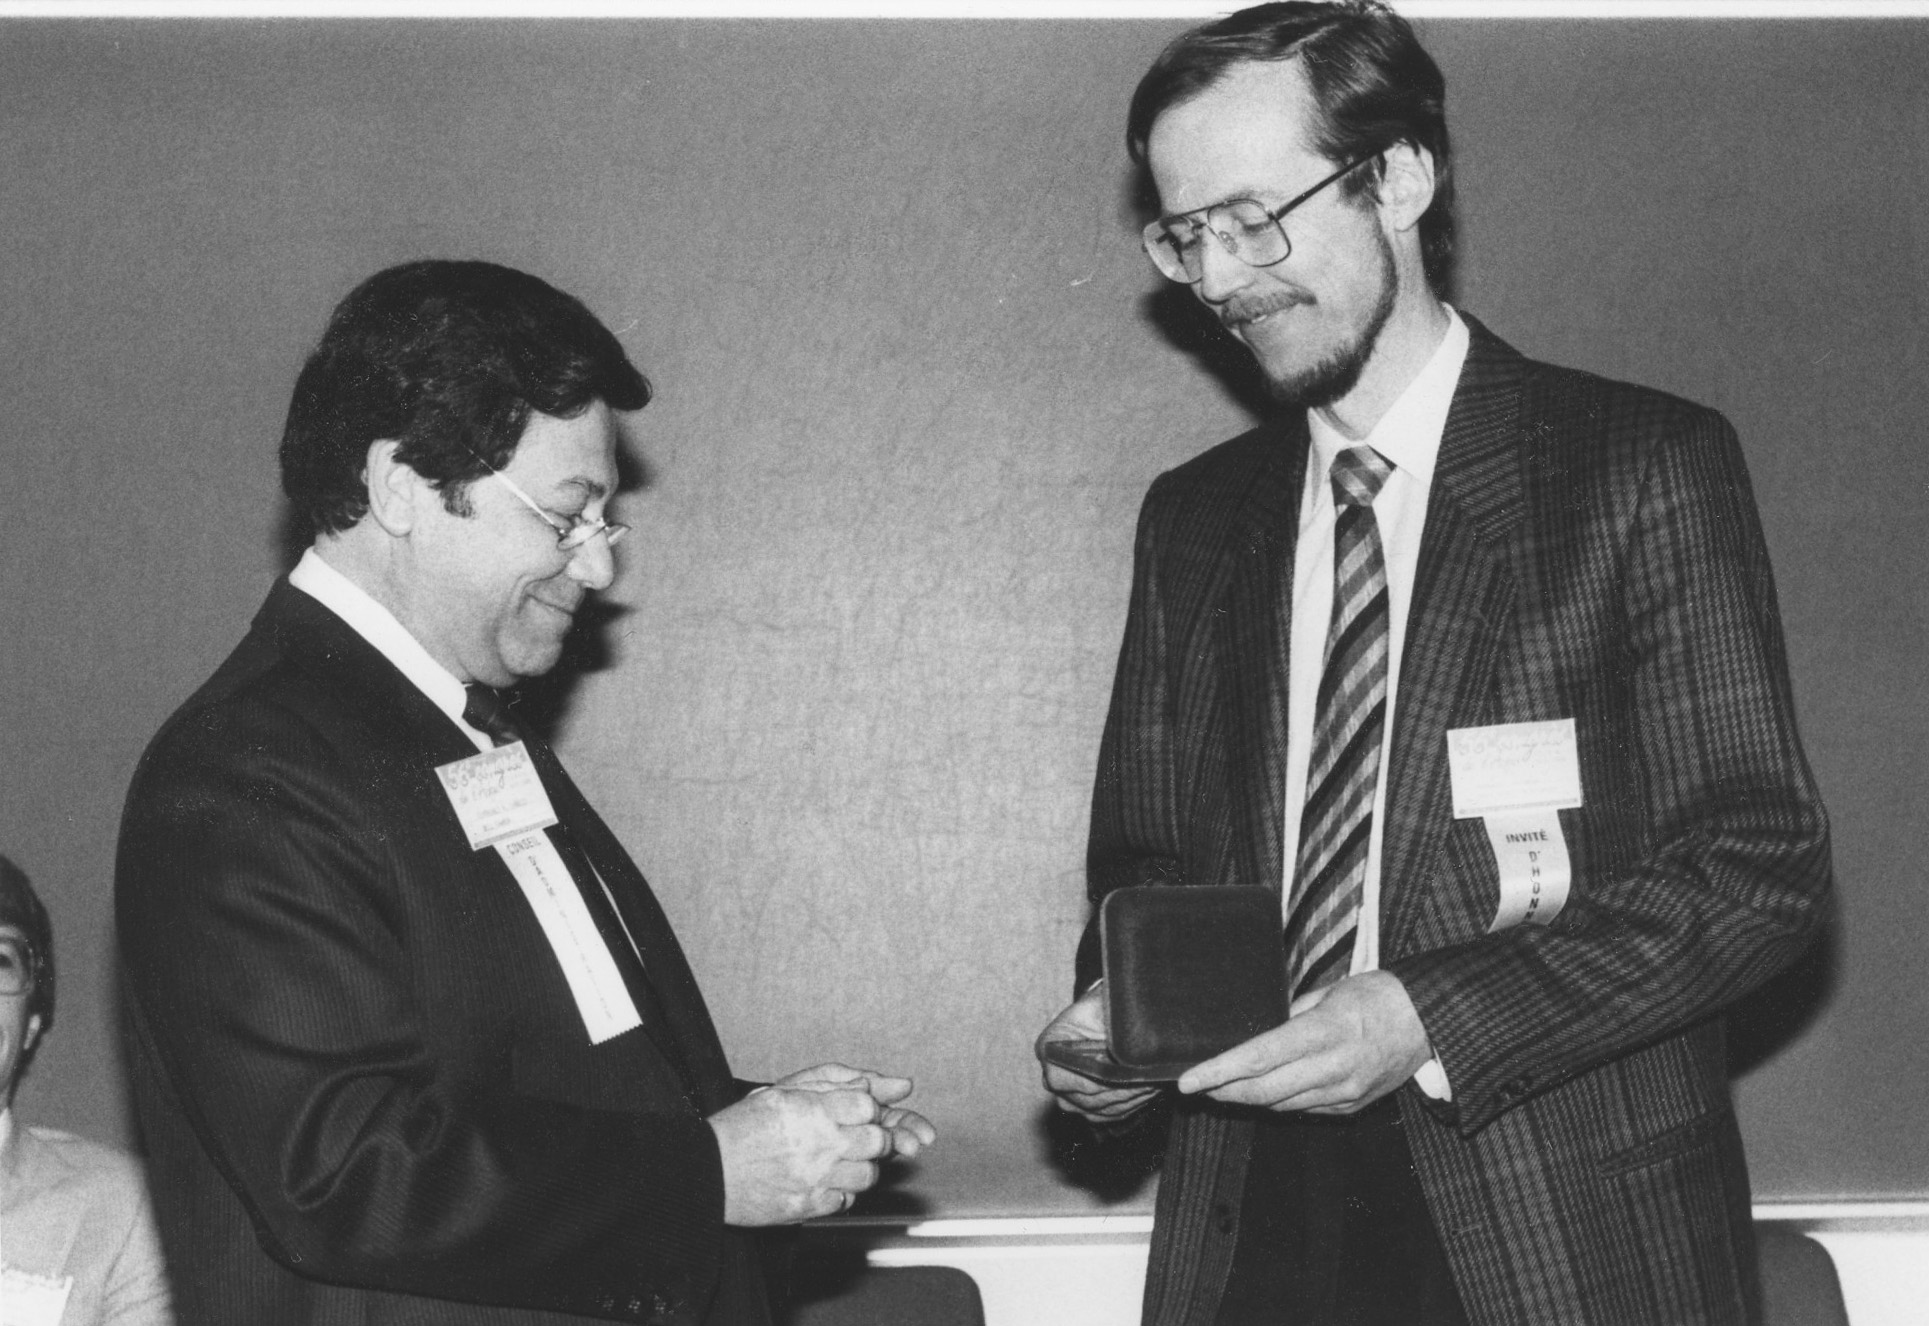 1988 - prix ACFAS, Moncton  - photo with R. Charles Terreault.jpg 5.4K